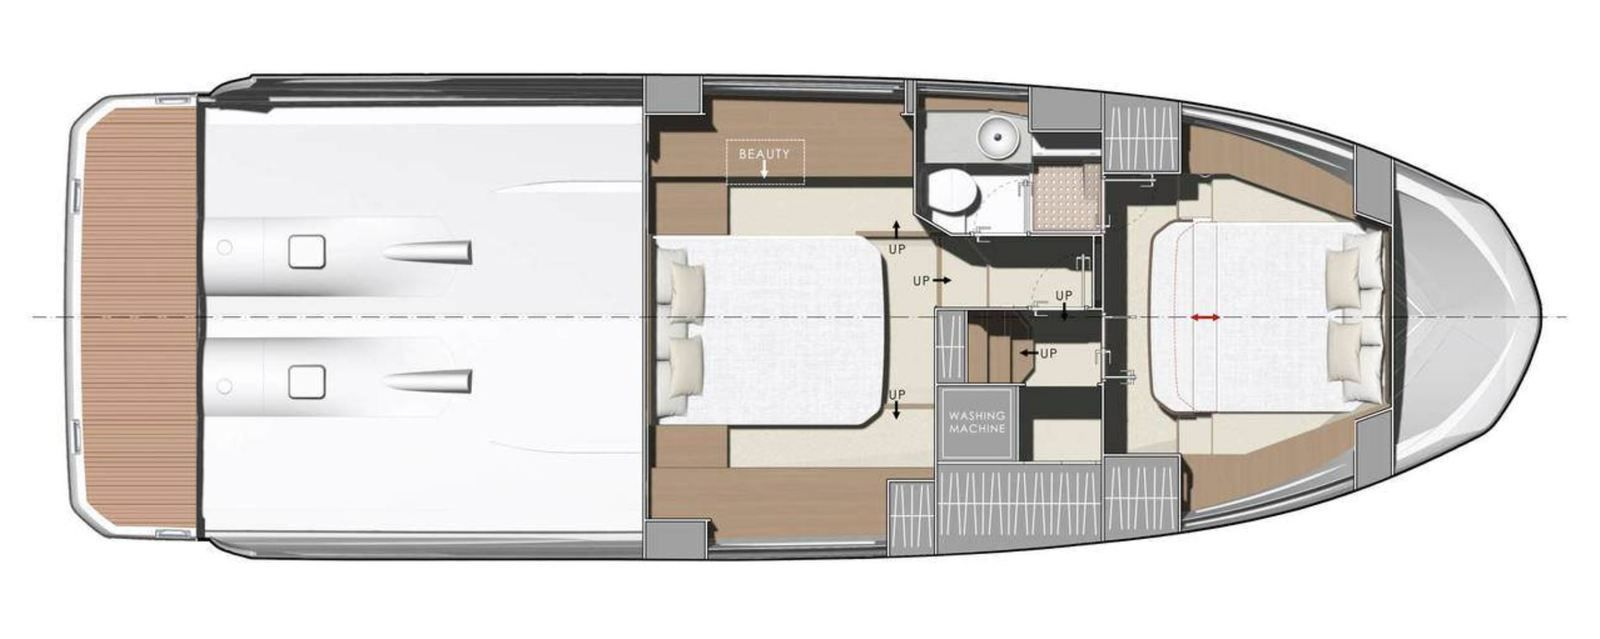 Layout of the Prestige 420